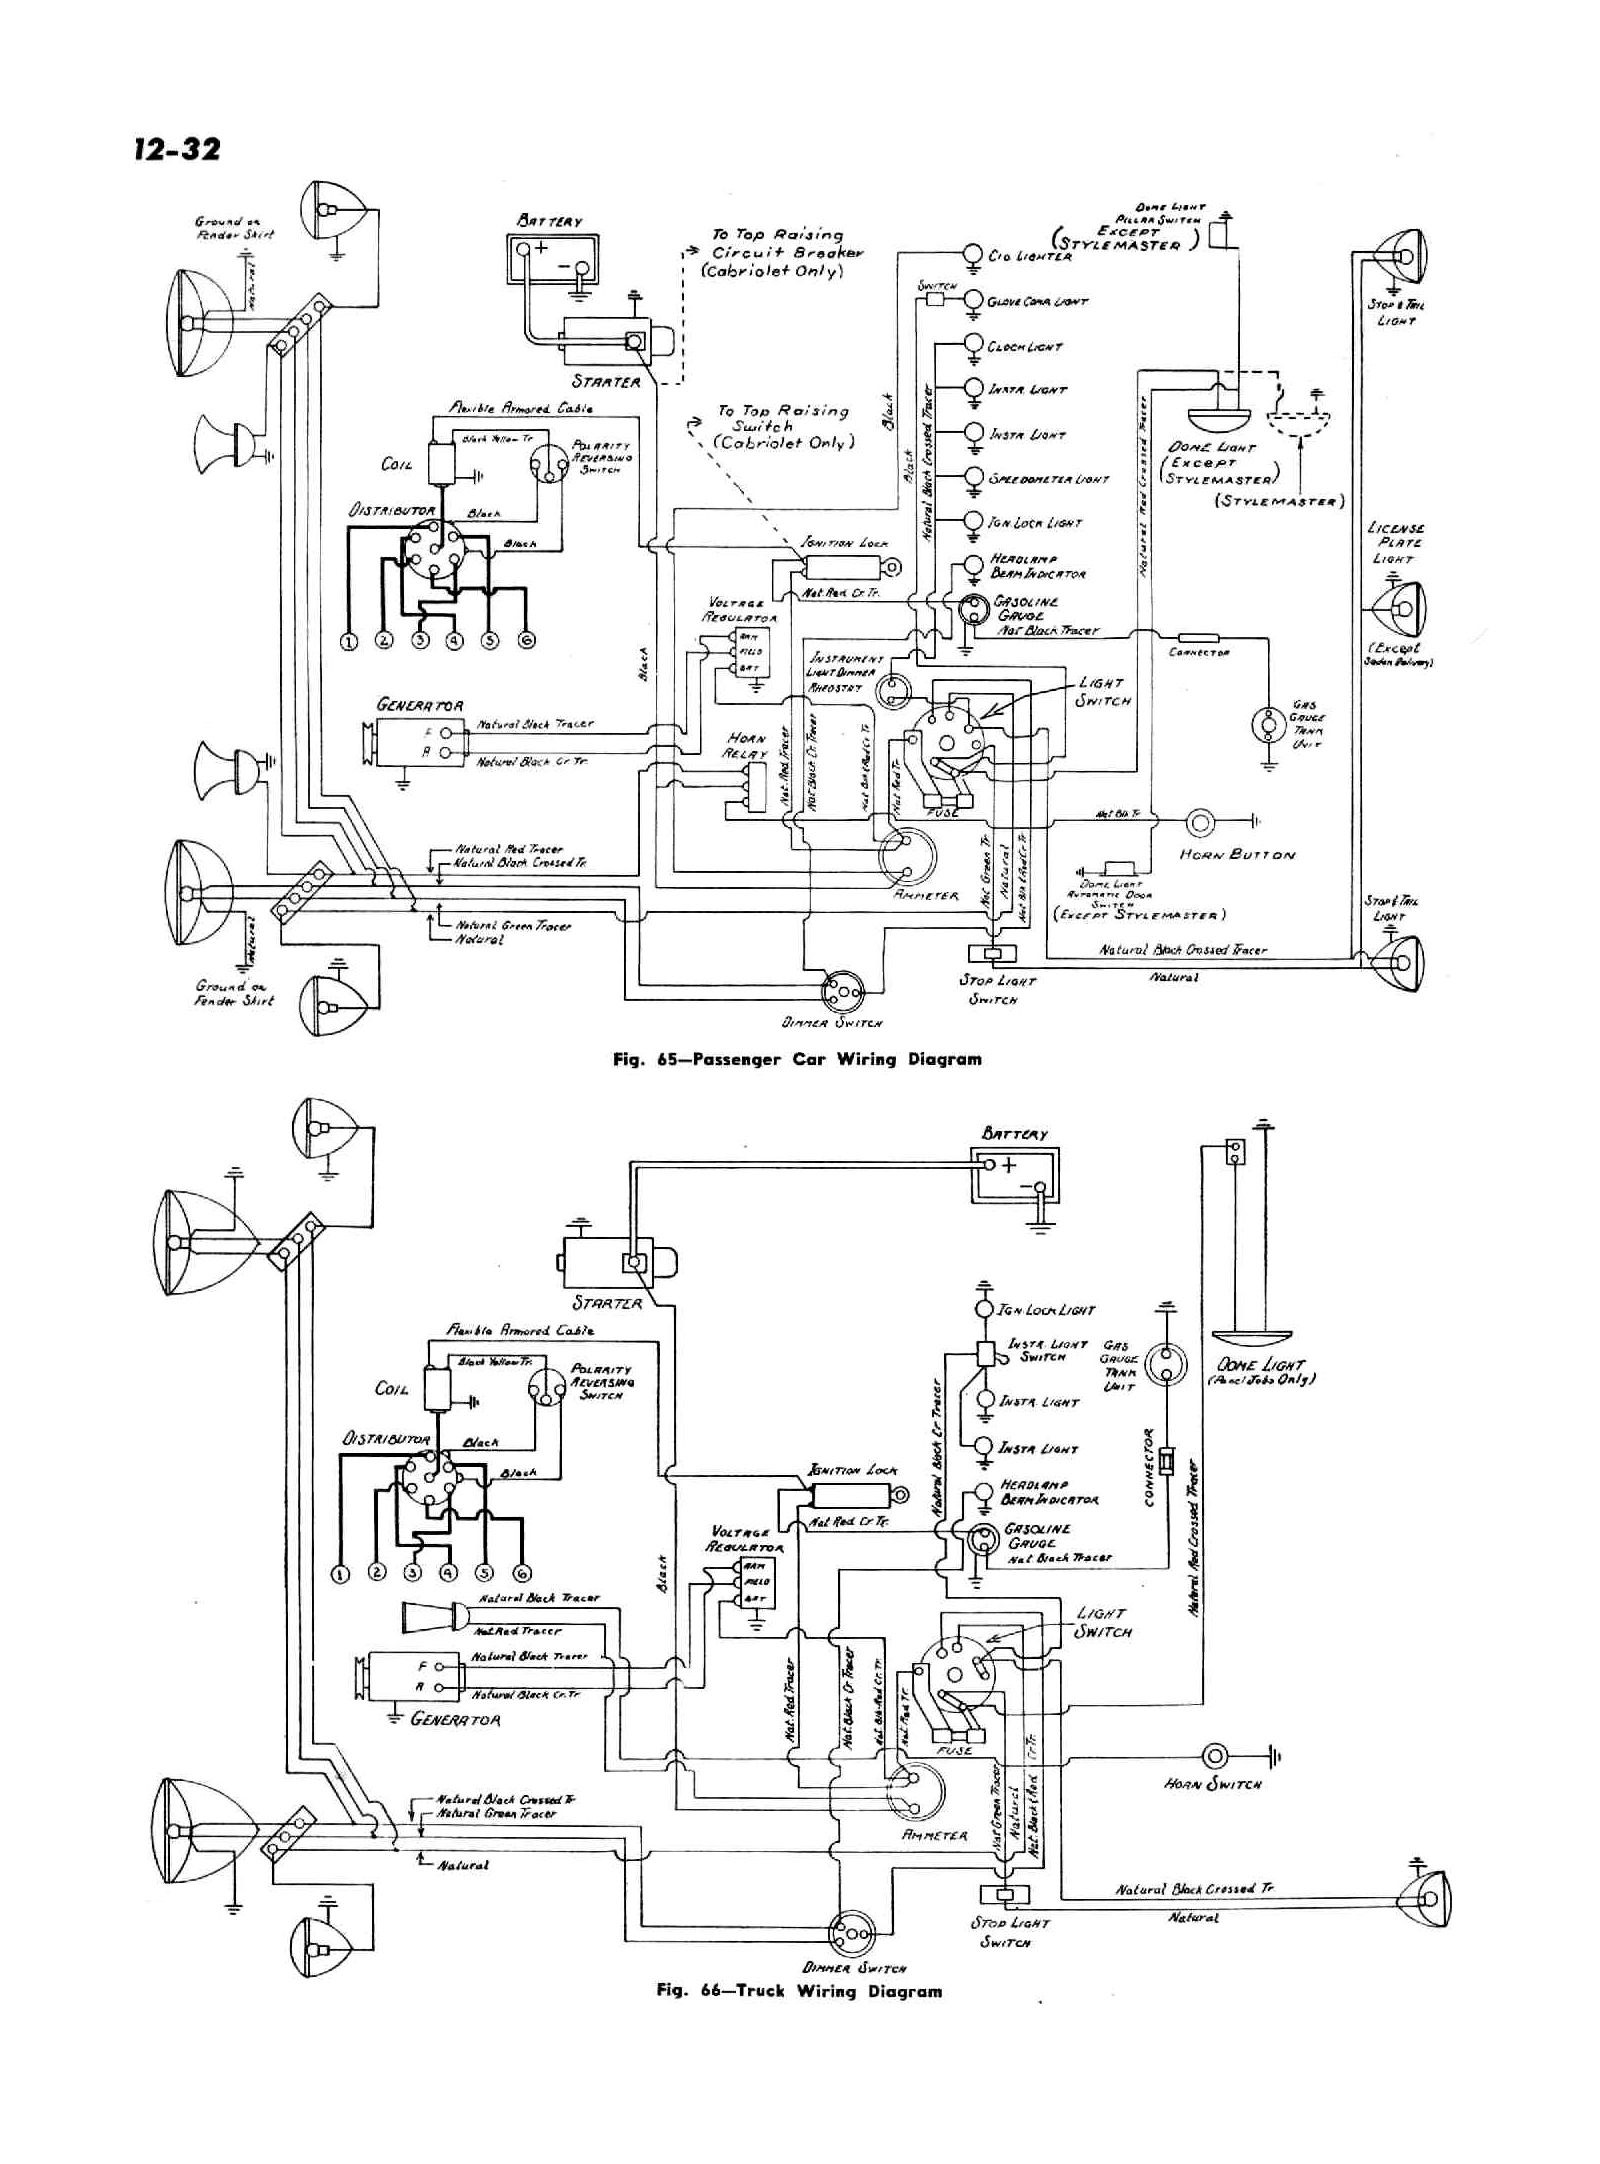 Kohler Engine Ignition Wiring Diagram Ignition Switch Wiring Diagram Chevy New Universal Autoctono Of Kohler Engine Ignition Wiring Diagram Key Wiring Diagram Wiring Diagram